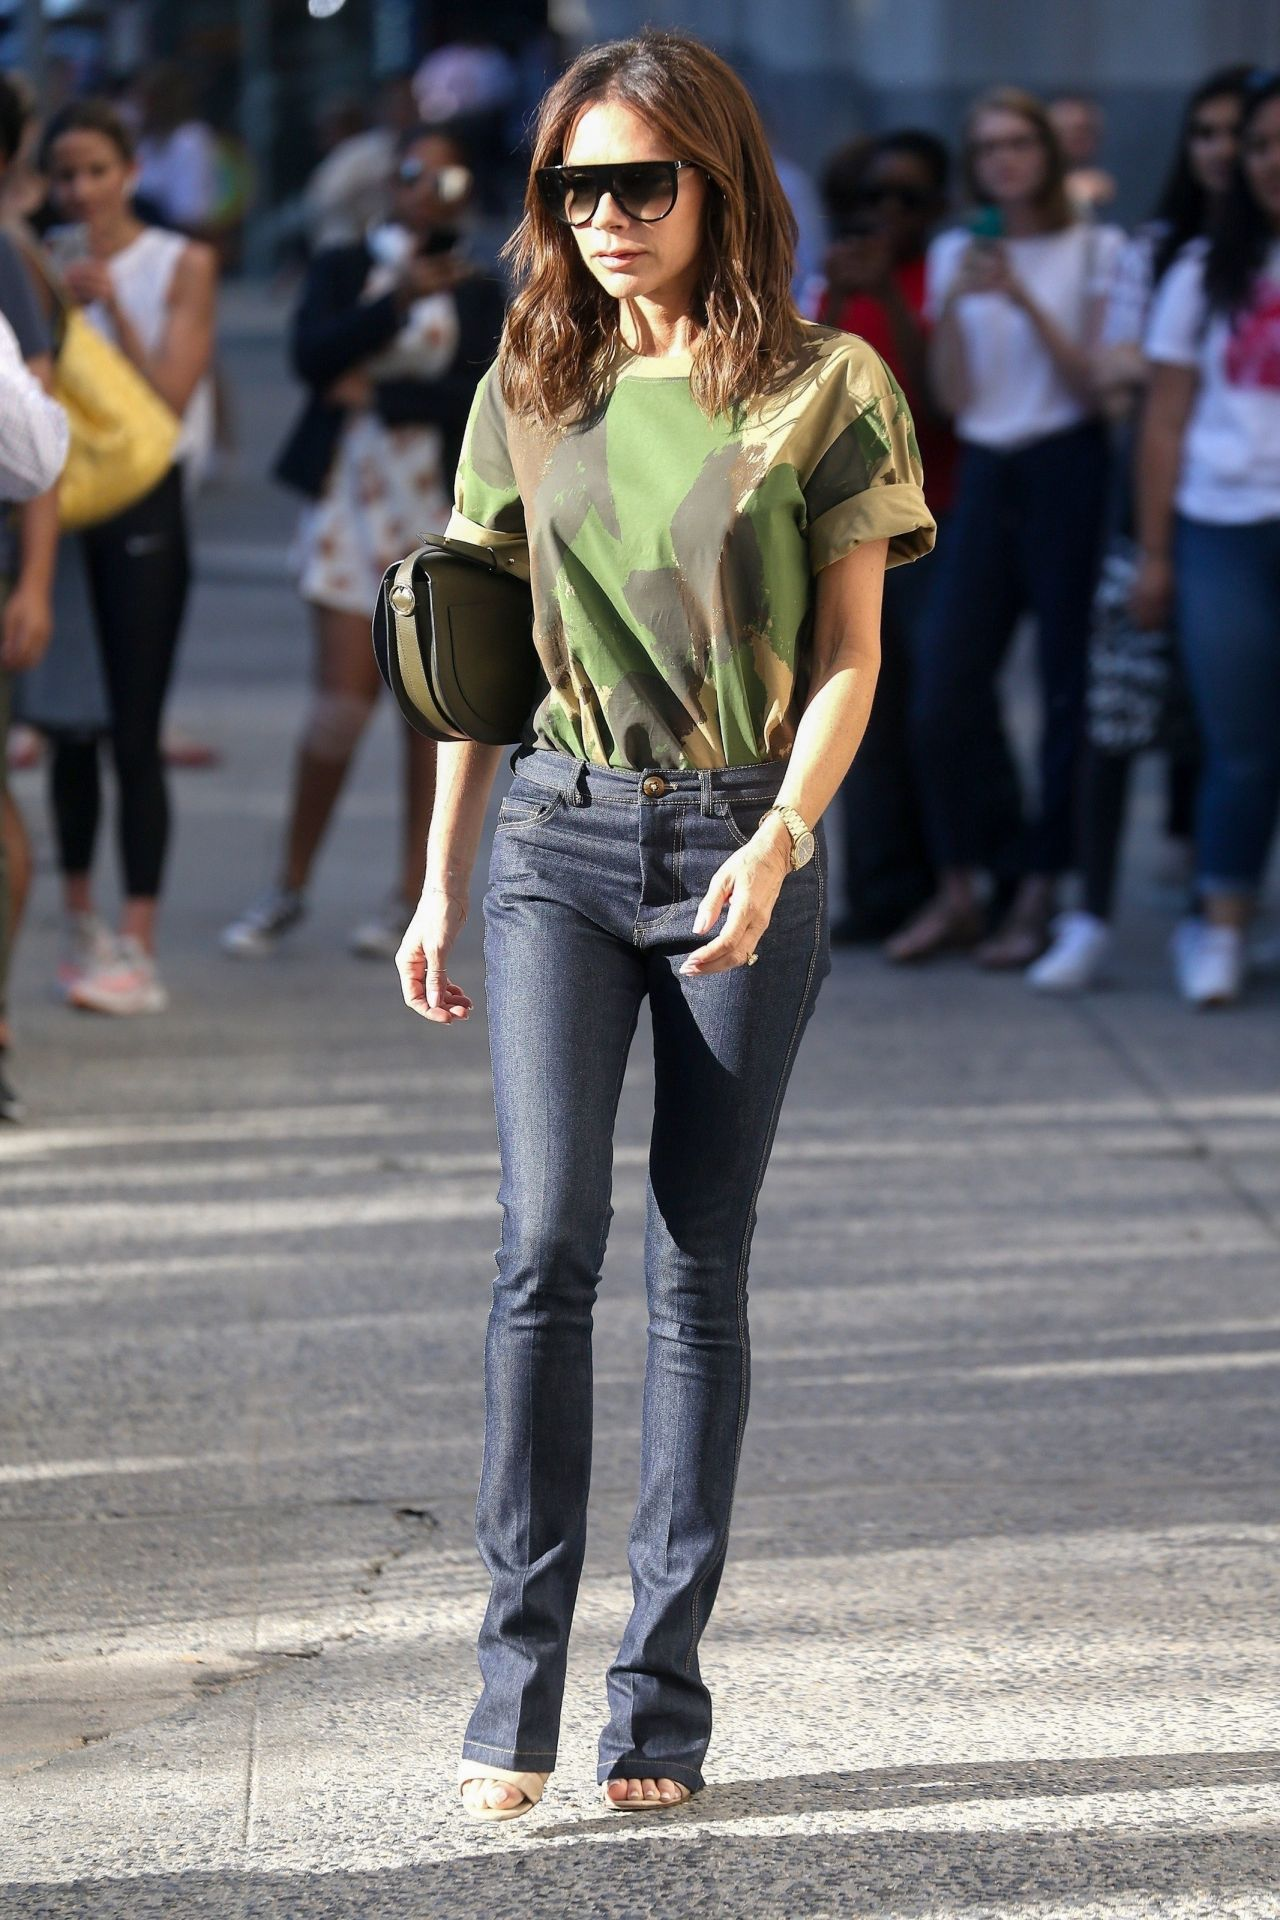 Victoria Beckham Casual Style , Leaving Her Hotel in New